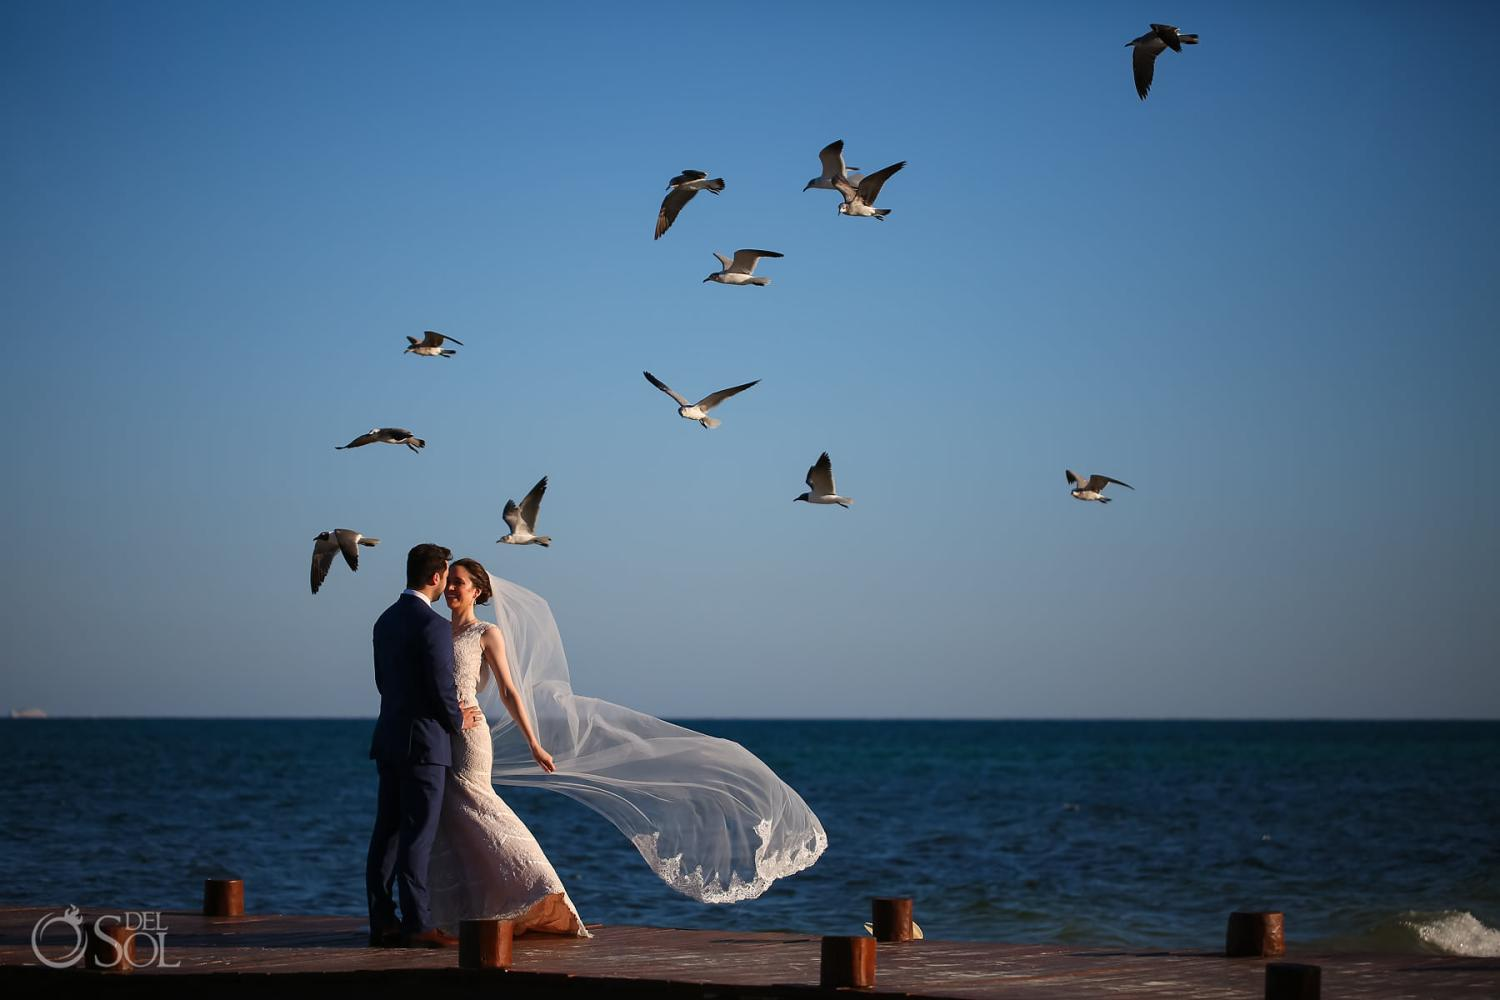 All inclusive resort elopement ideas bride with long veil surrounded by birds